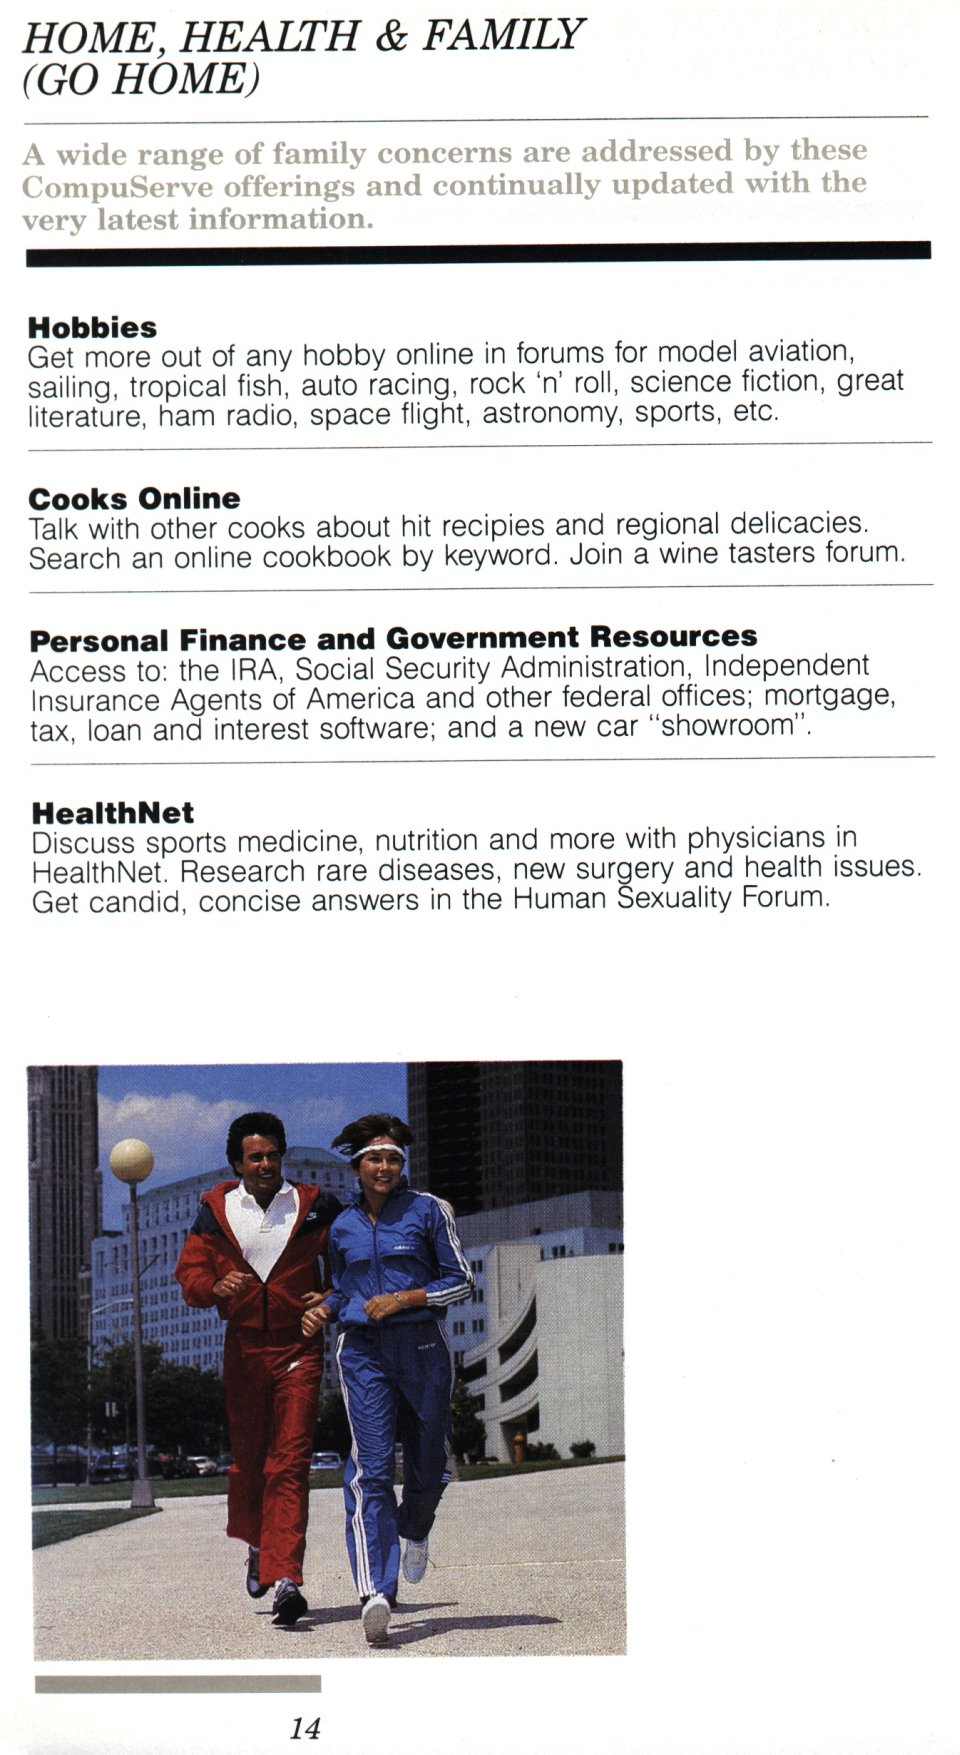 [CompuServe IntroPak page 14/44  Home, Health & Family (GO HOME)]